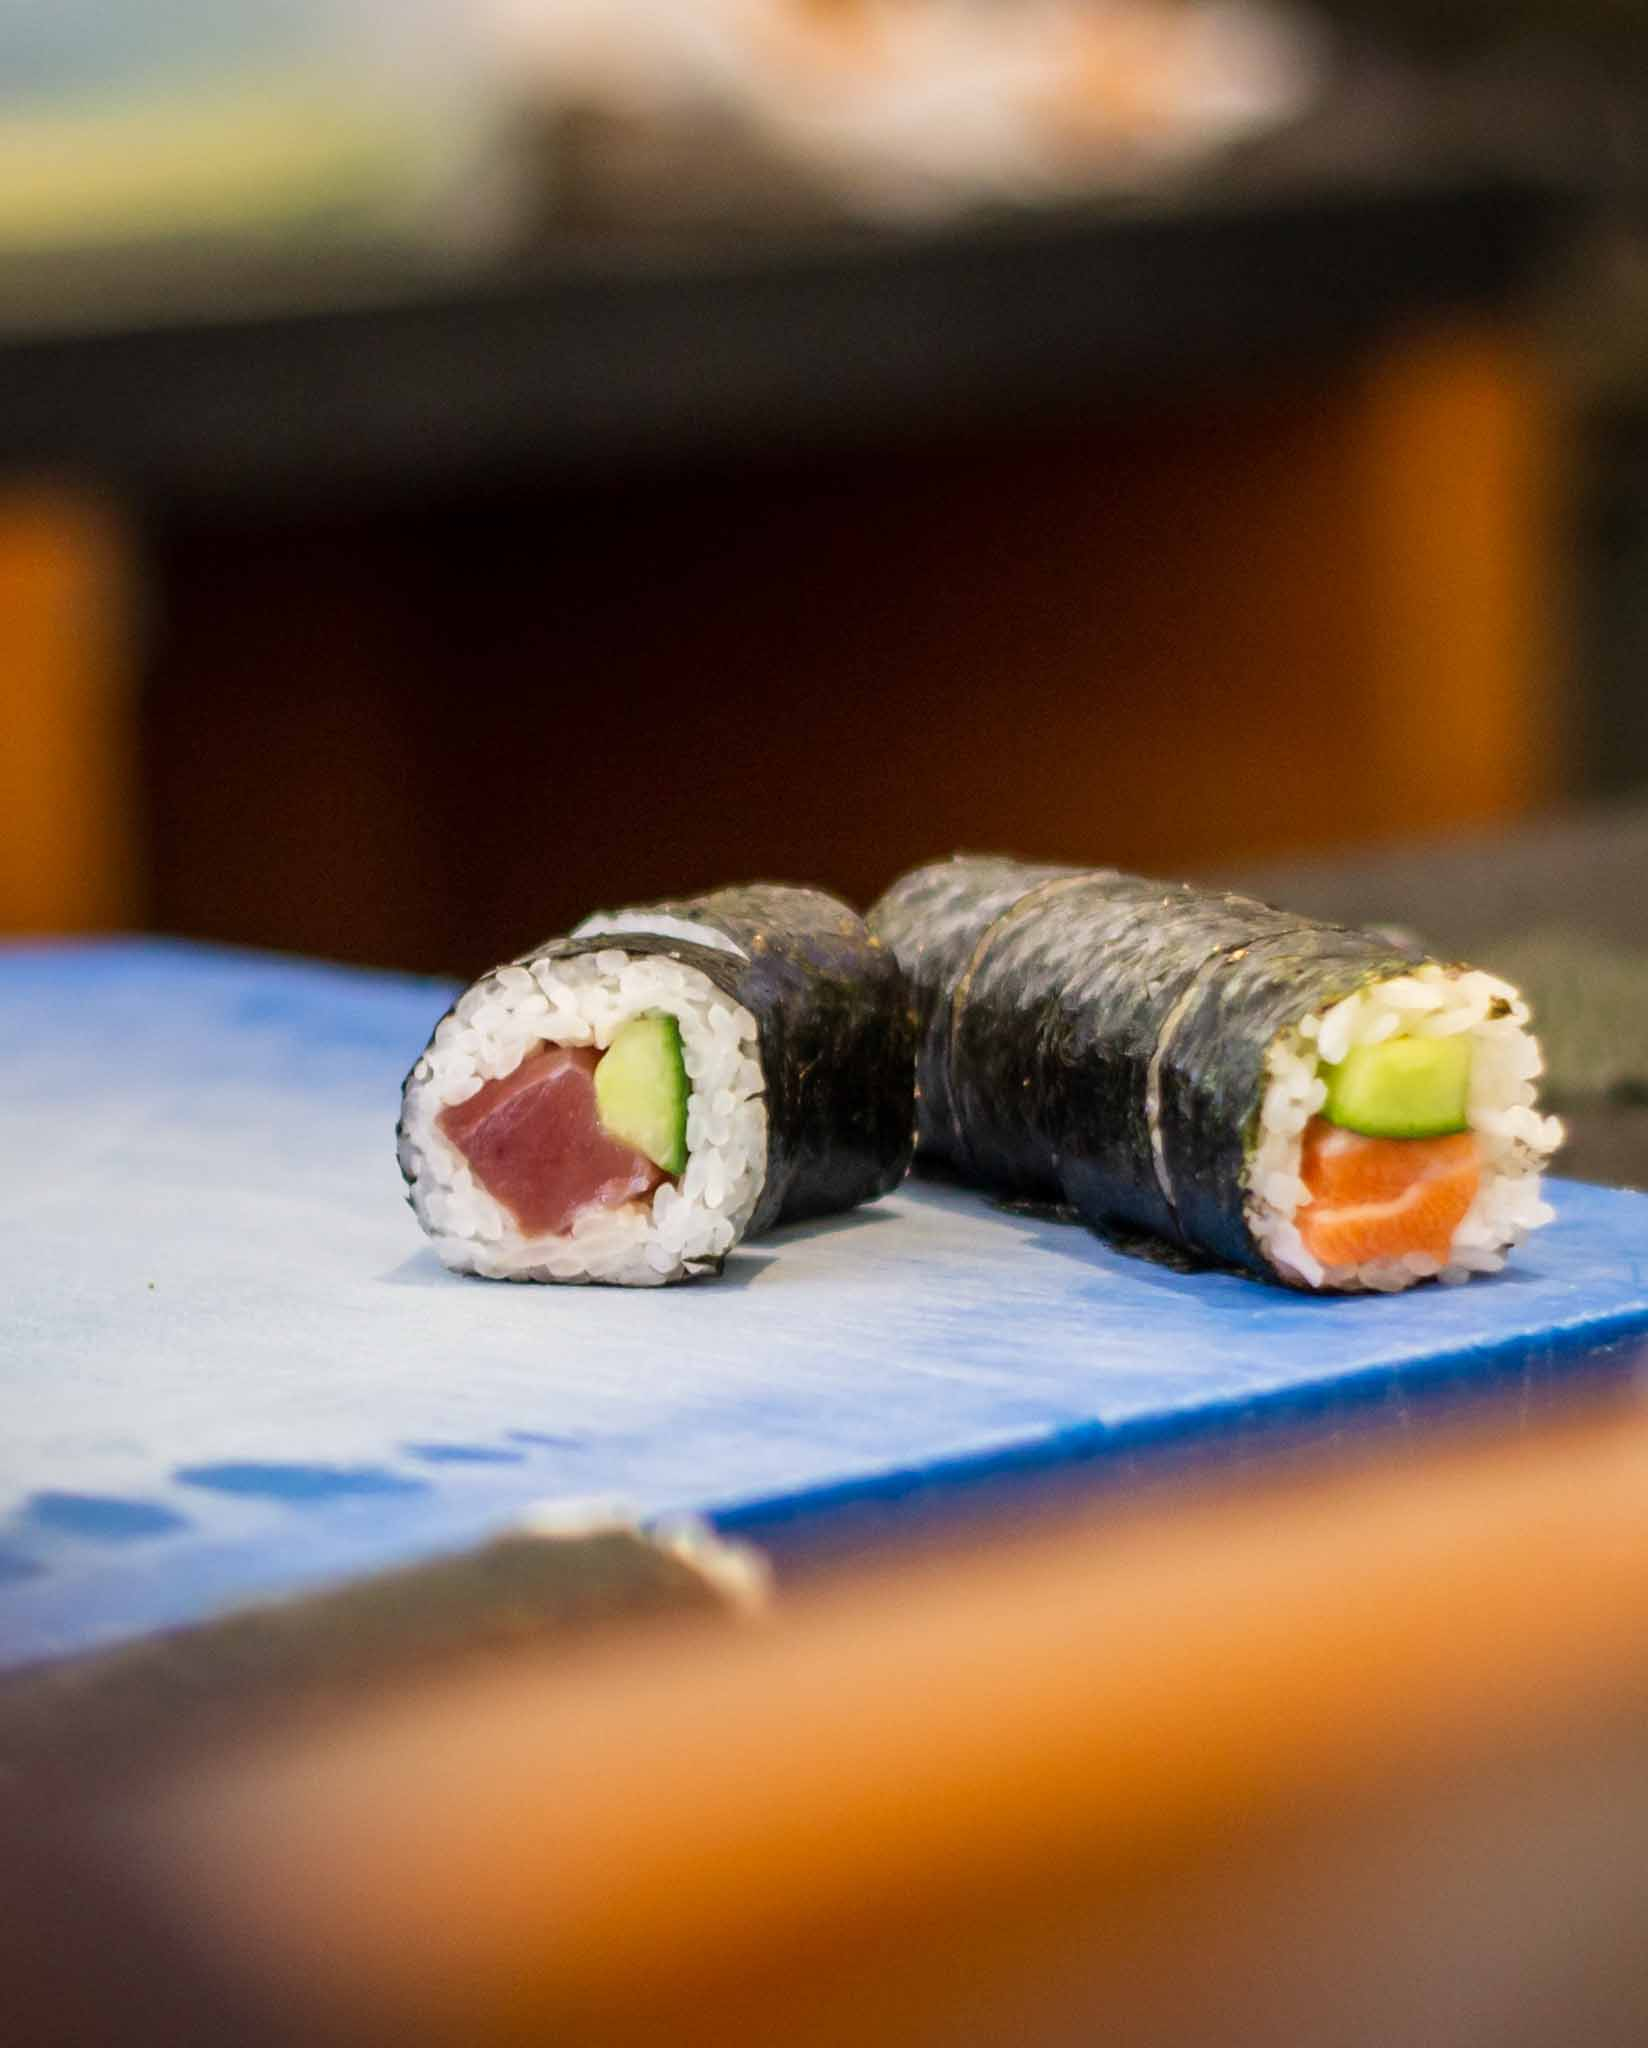 Two rolls of sushi on a blue cutting board in a Japanese restaurant